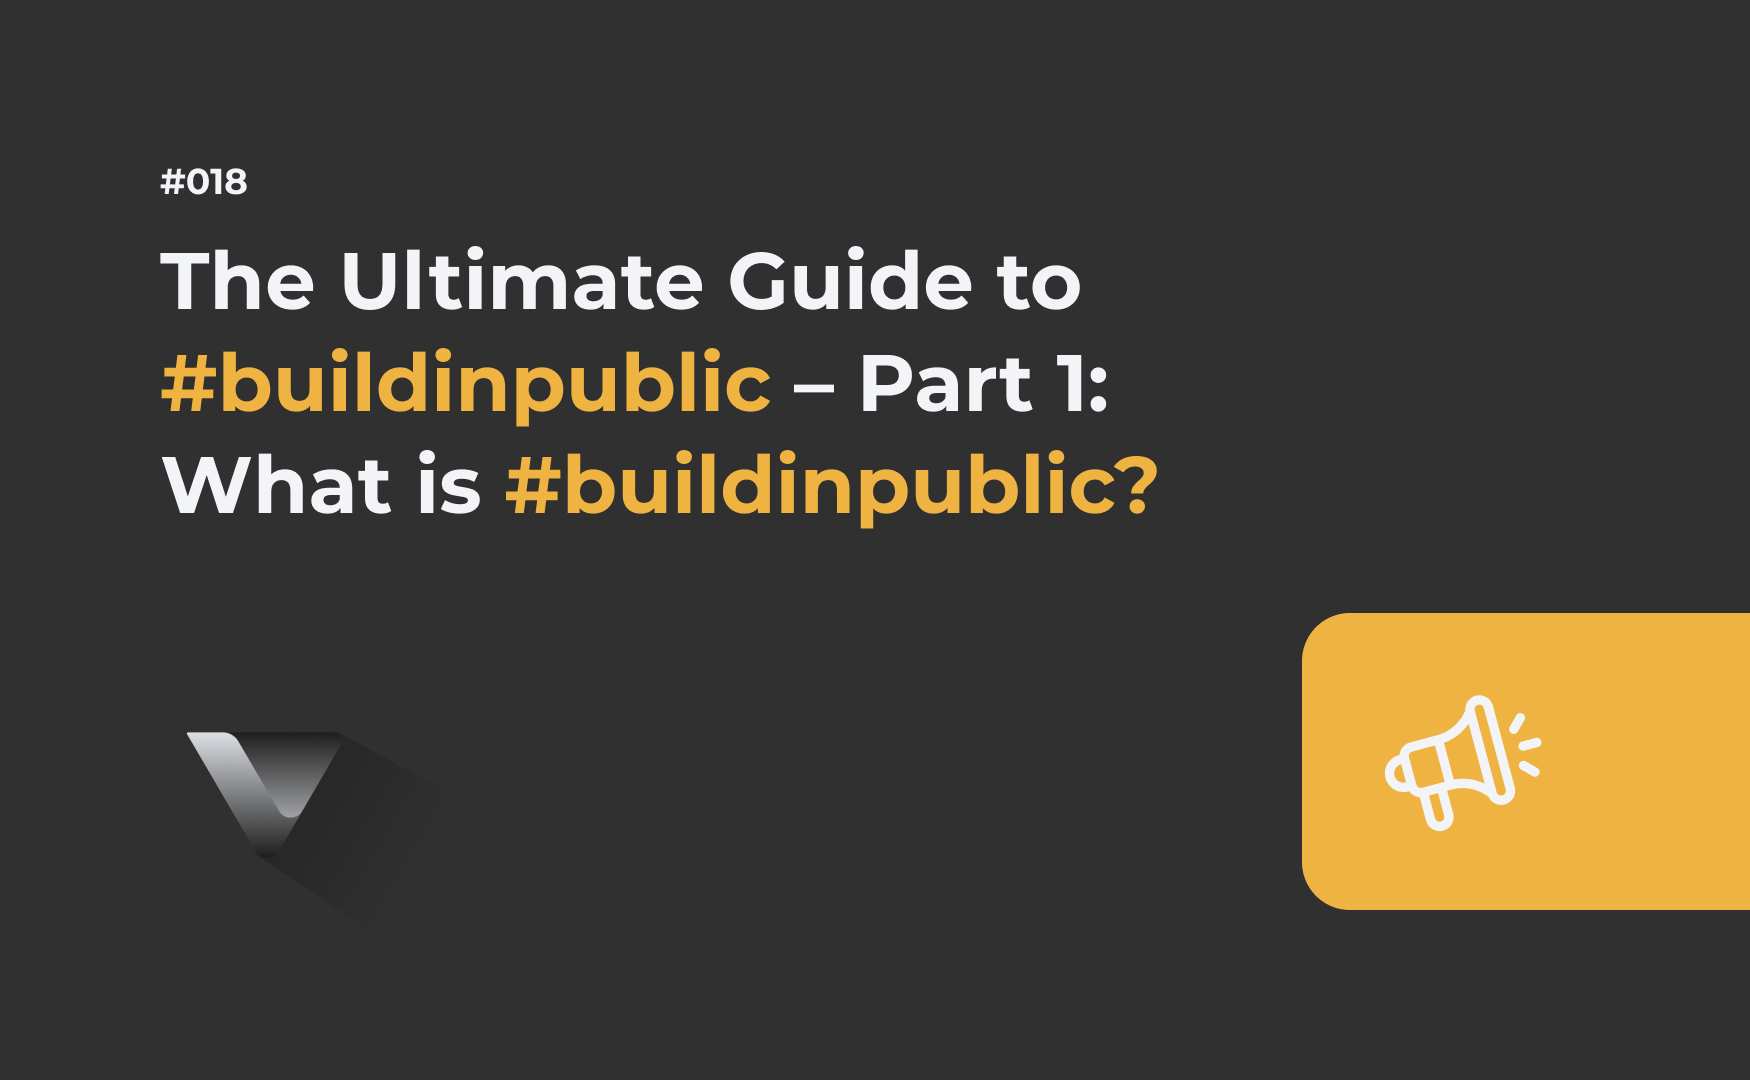 The Ultimate Guide to #buildinpublic – Part 1: What is #buildinpublic